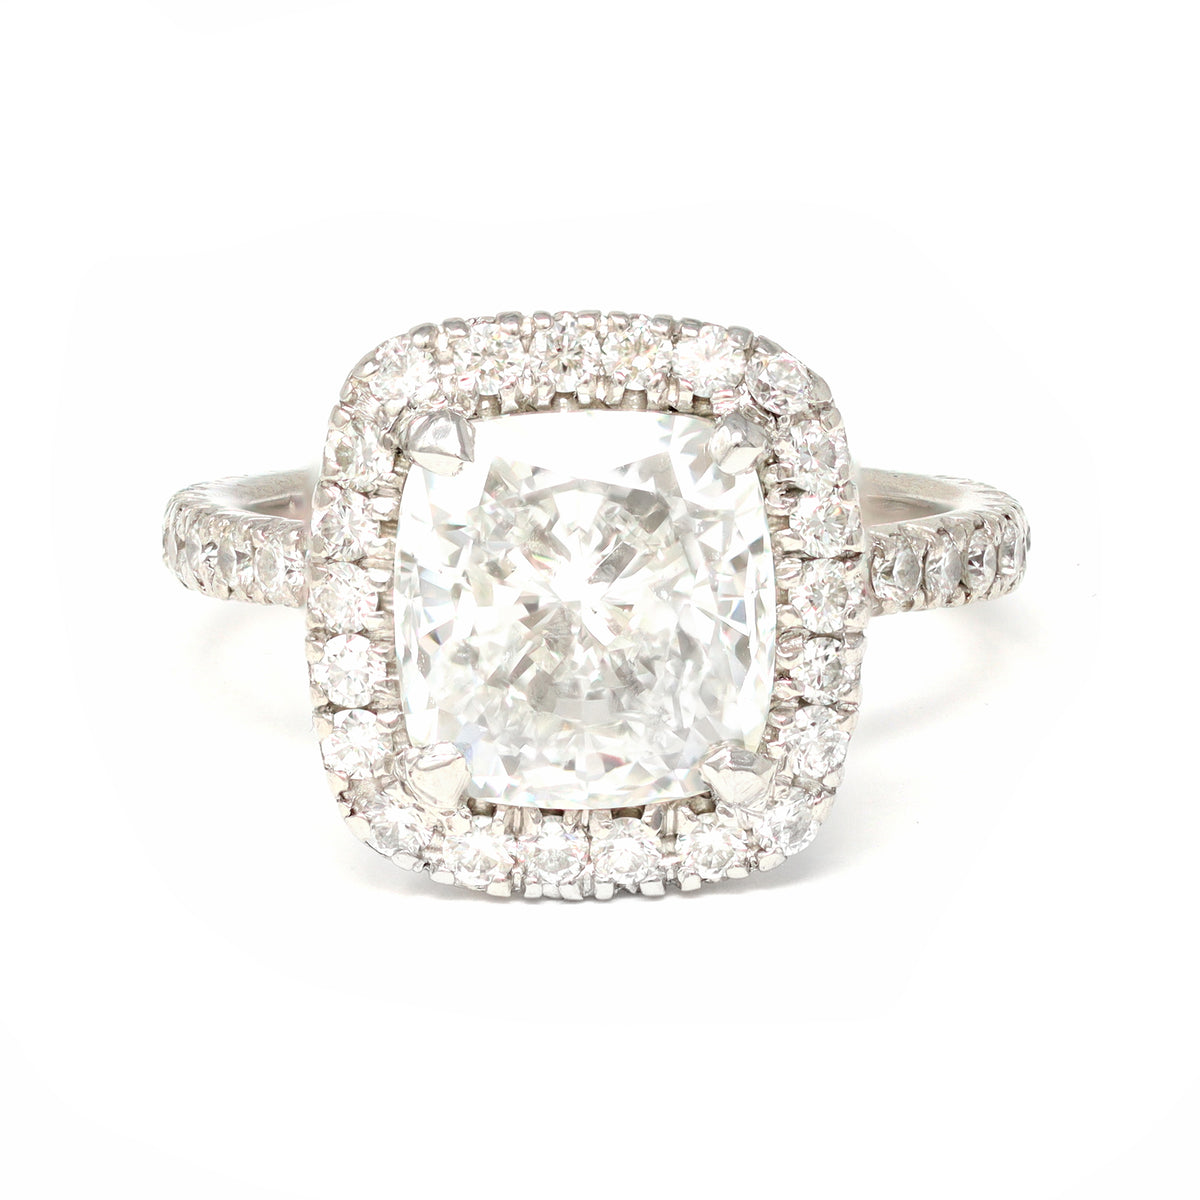 GIA Certified 3.07 Cushion Cut Solitaire Diamond Halo Ring in Platinum top view